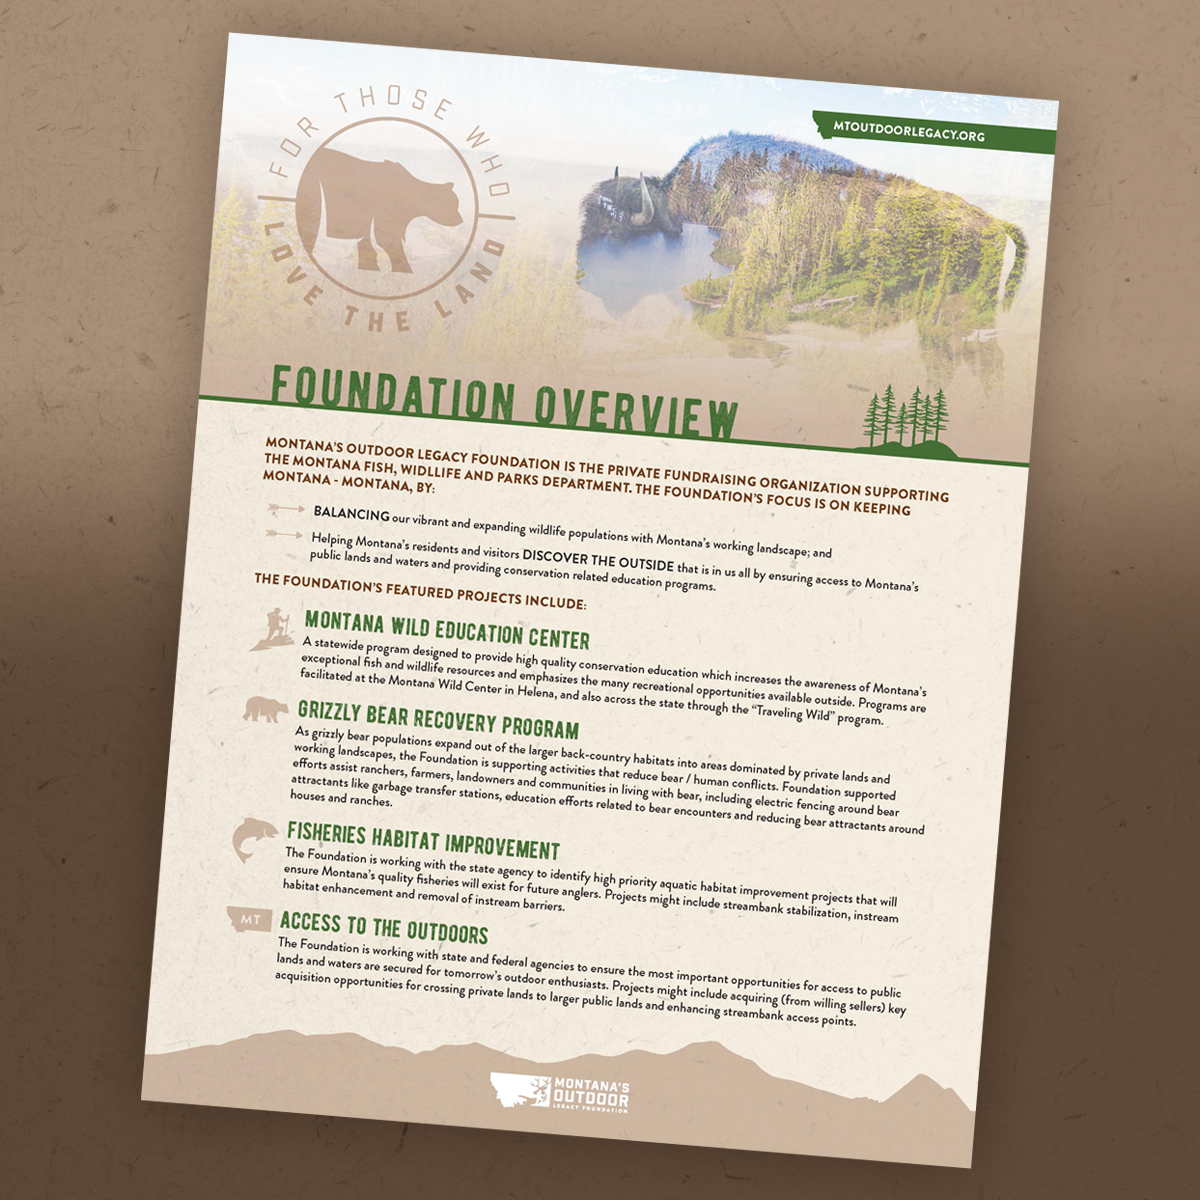 MOLF - Foundation Overview.png